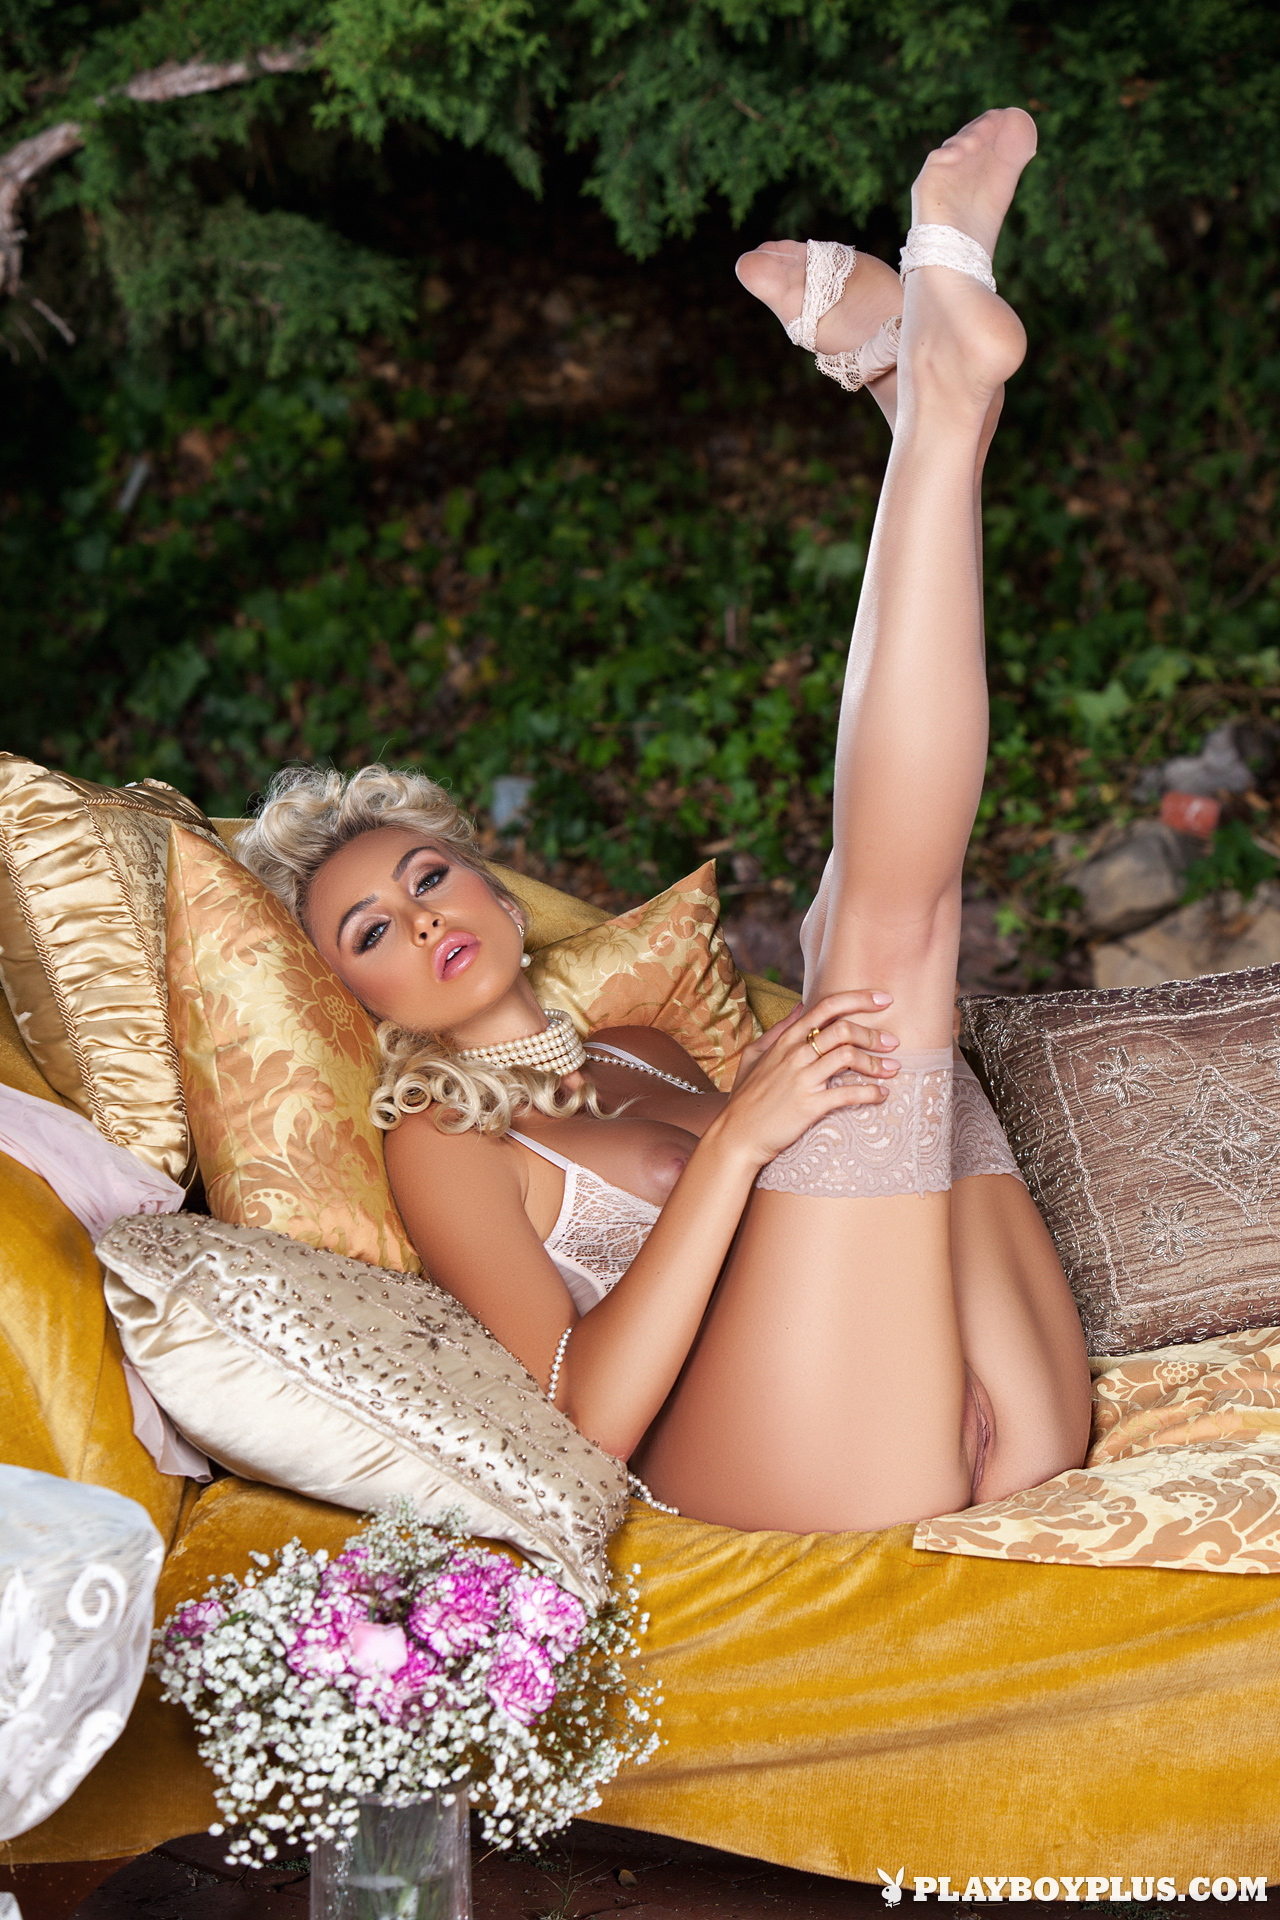 Khloe Terae in Decadent Dame - Centerfolds Blog